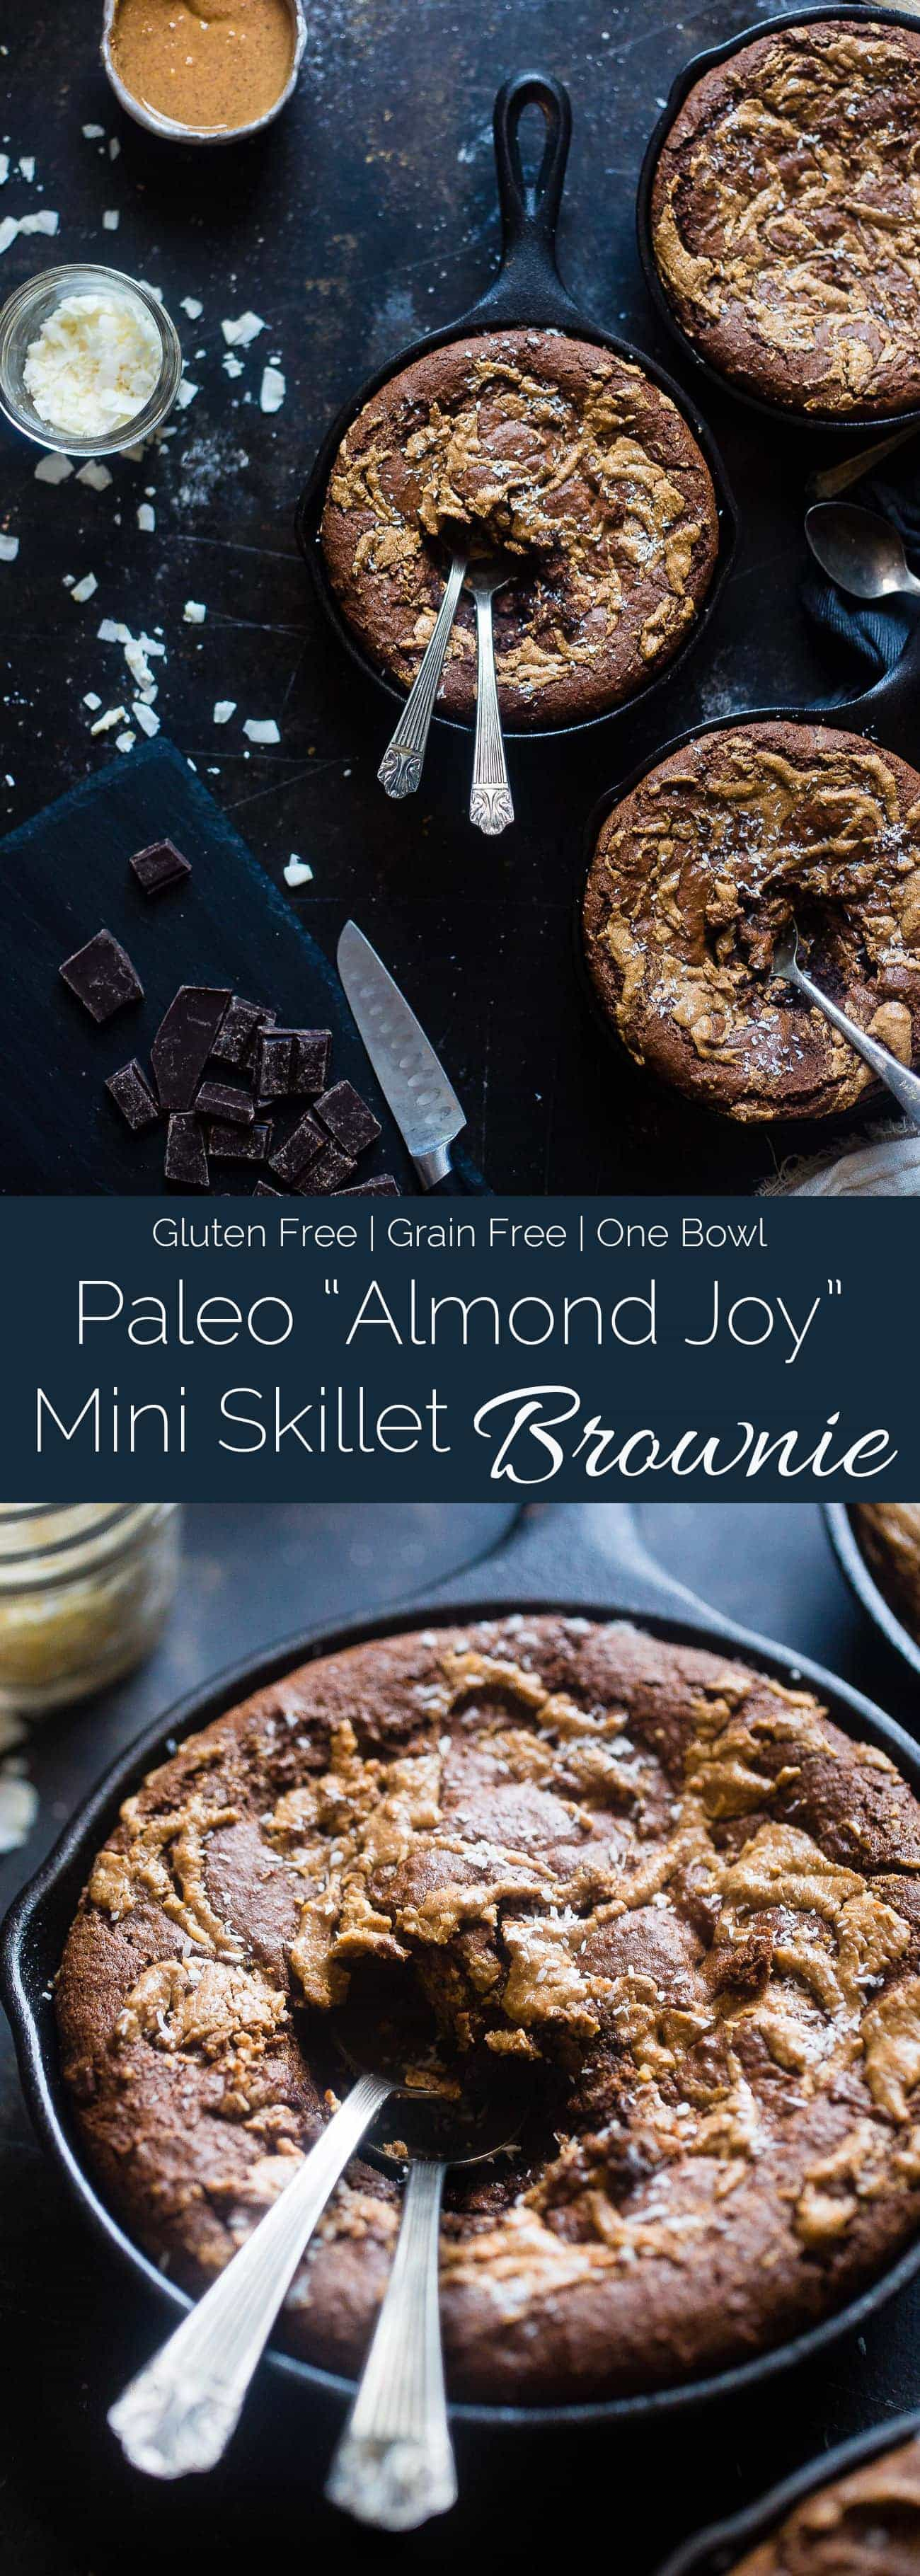 "Gluten Free ""Almond Joy"" Skillet Brownies - These rich, fudgy coconut almond skillet brownies are made in one bowl! They're a paleo friendly, healthier dessert that everyone will love! 